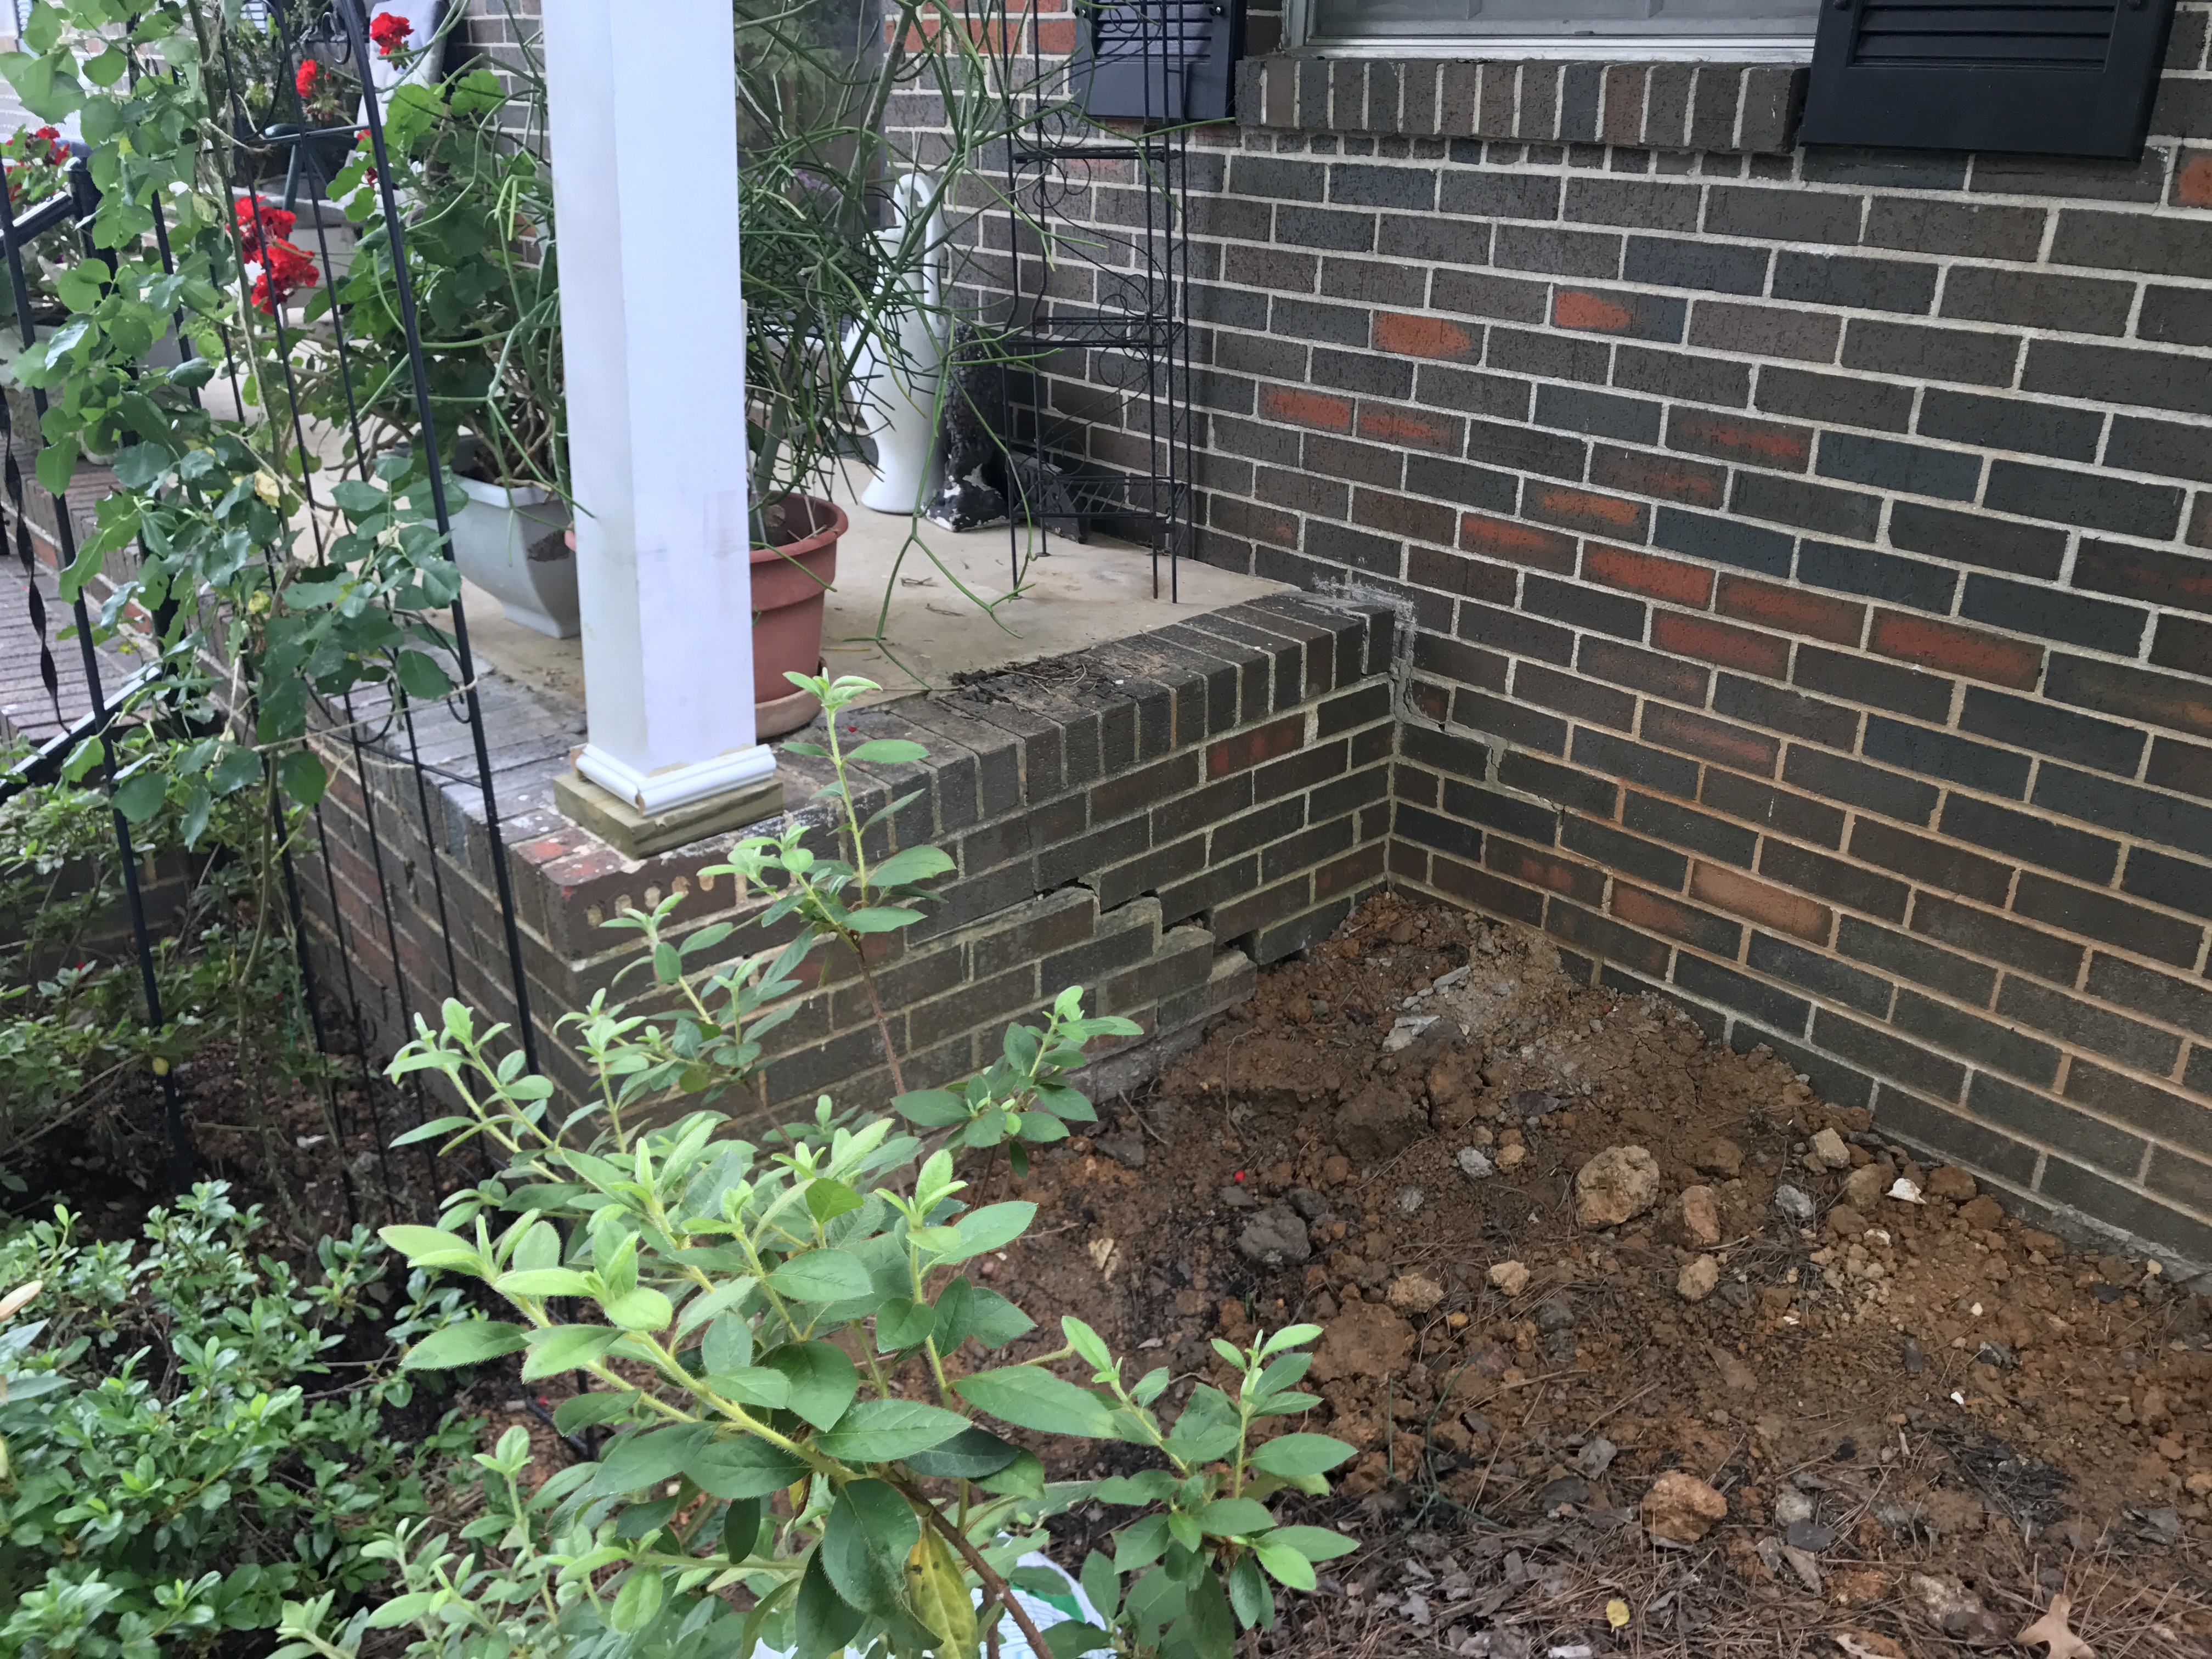 Stair stepping crack separating the mortar of the brick porch in Adamsville home